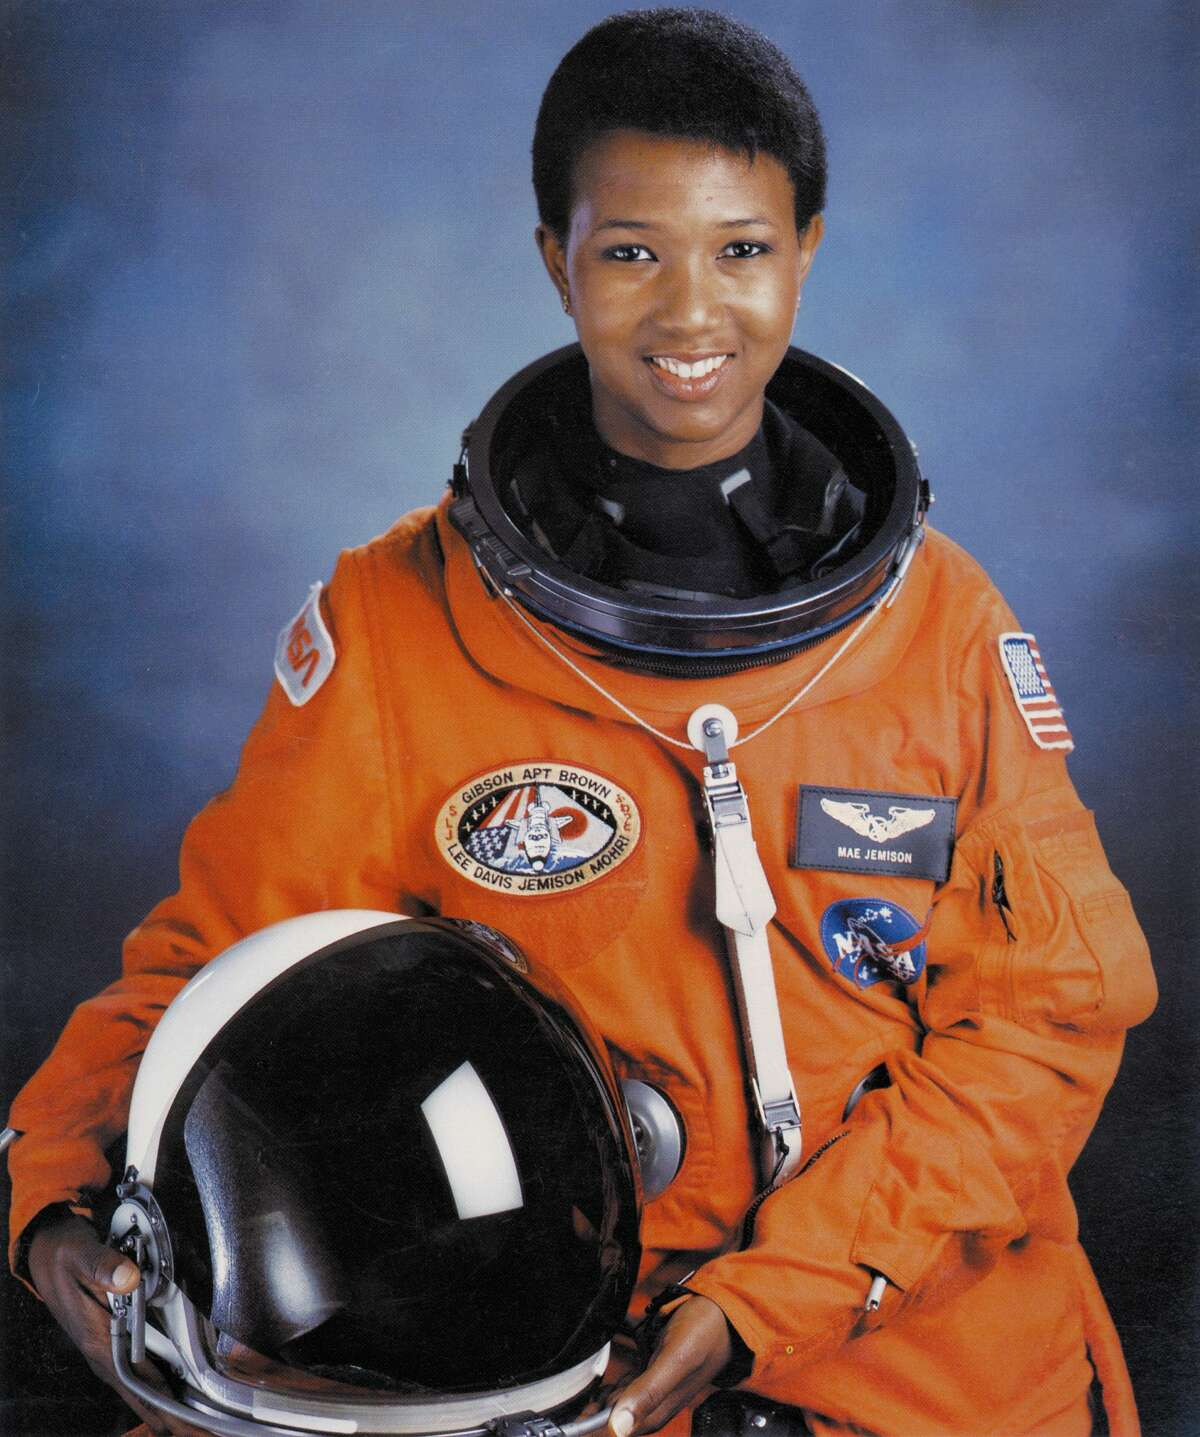 Dr. Mae Jemison became the first woman of color to go into space on Sept. 12, 1992.